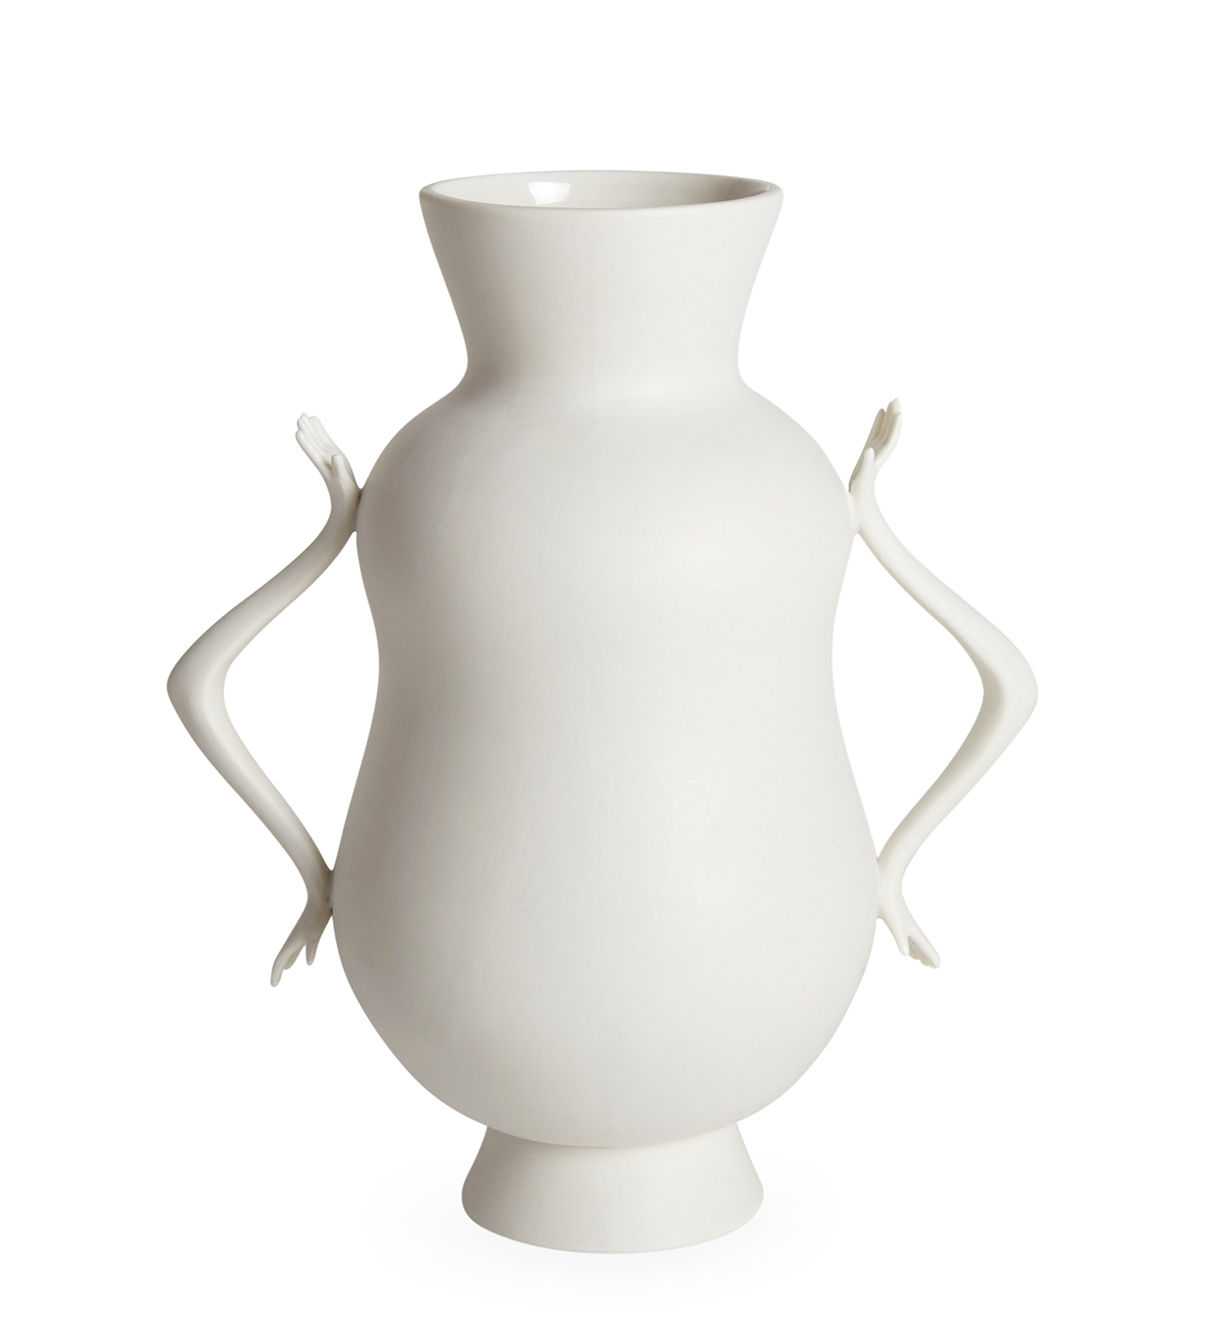 Decoration - Vases - Eve Double Bulb Vase - / Handles in the shape of hands by Jonathan Adler - White - China